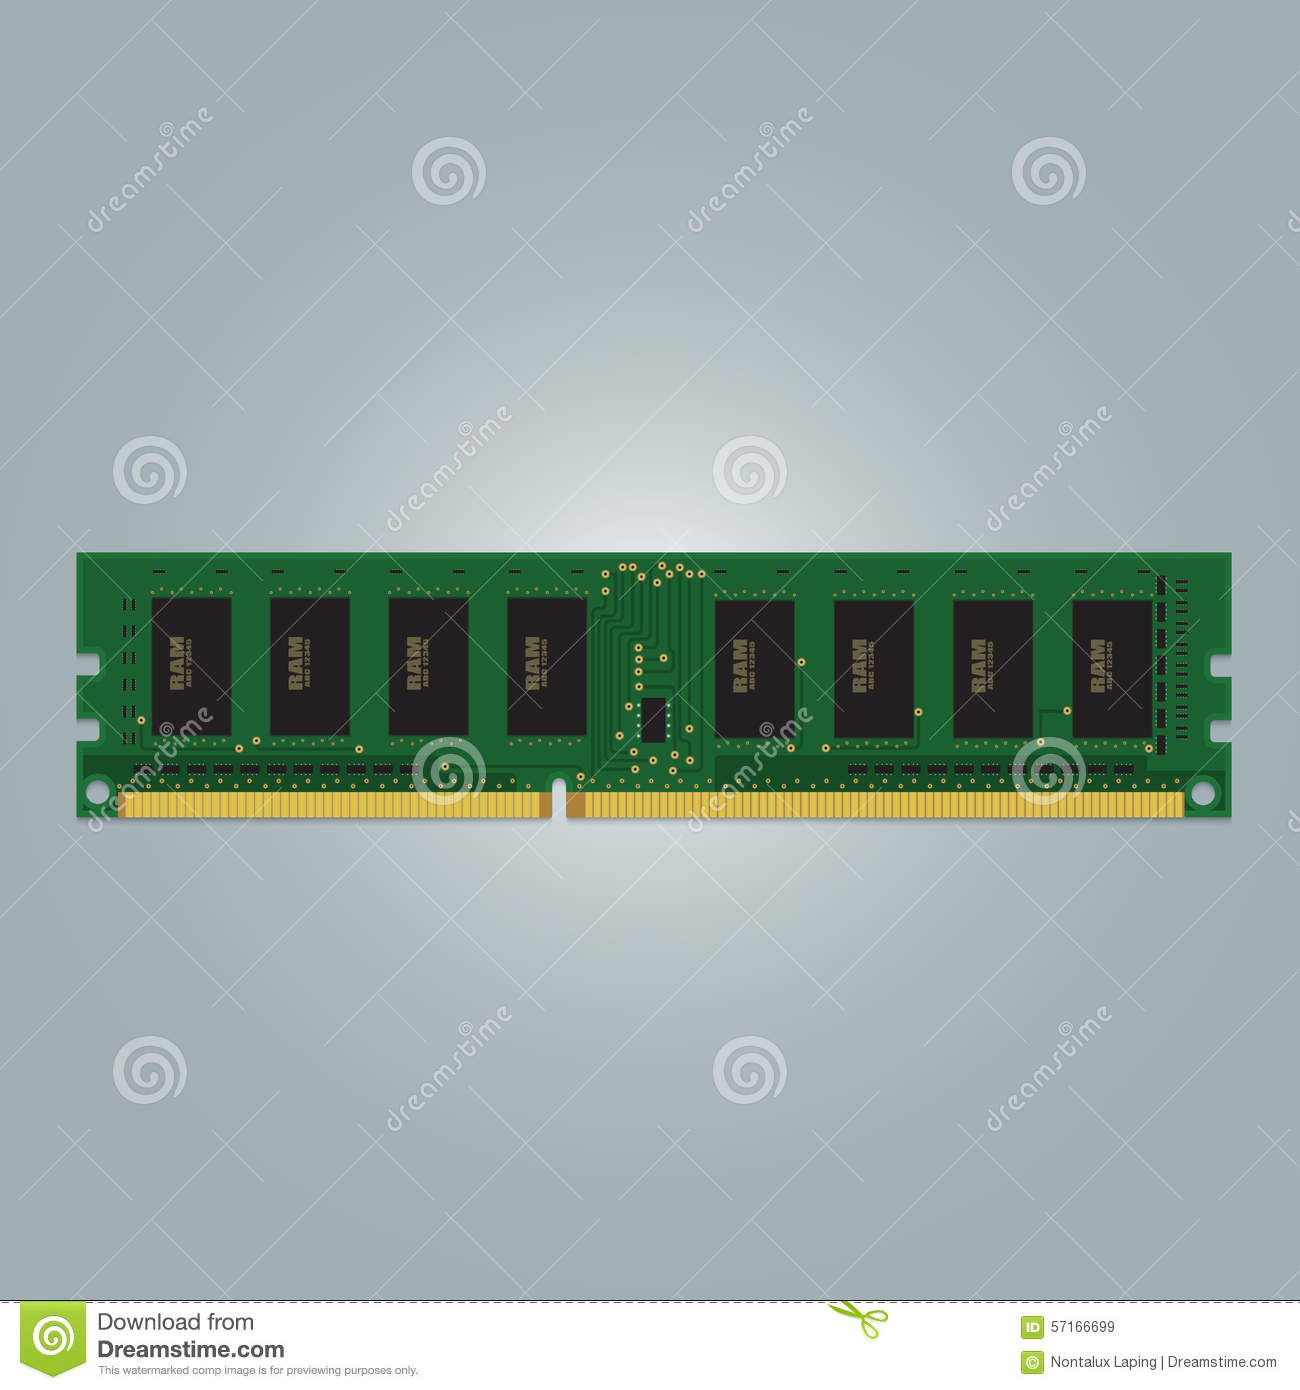 understanding random access memory ram in a computer Forensic investigations seek to uncover evidence and then analyze it in order to gain a full understanding random-access memory computer forensics computer.